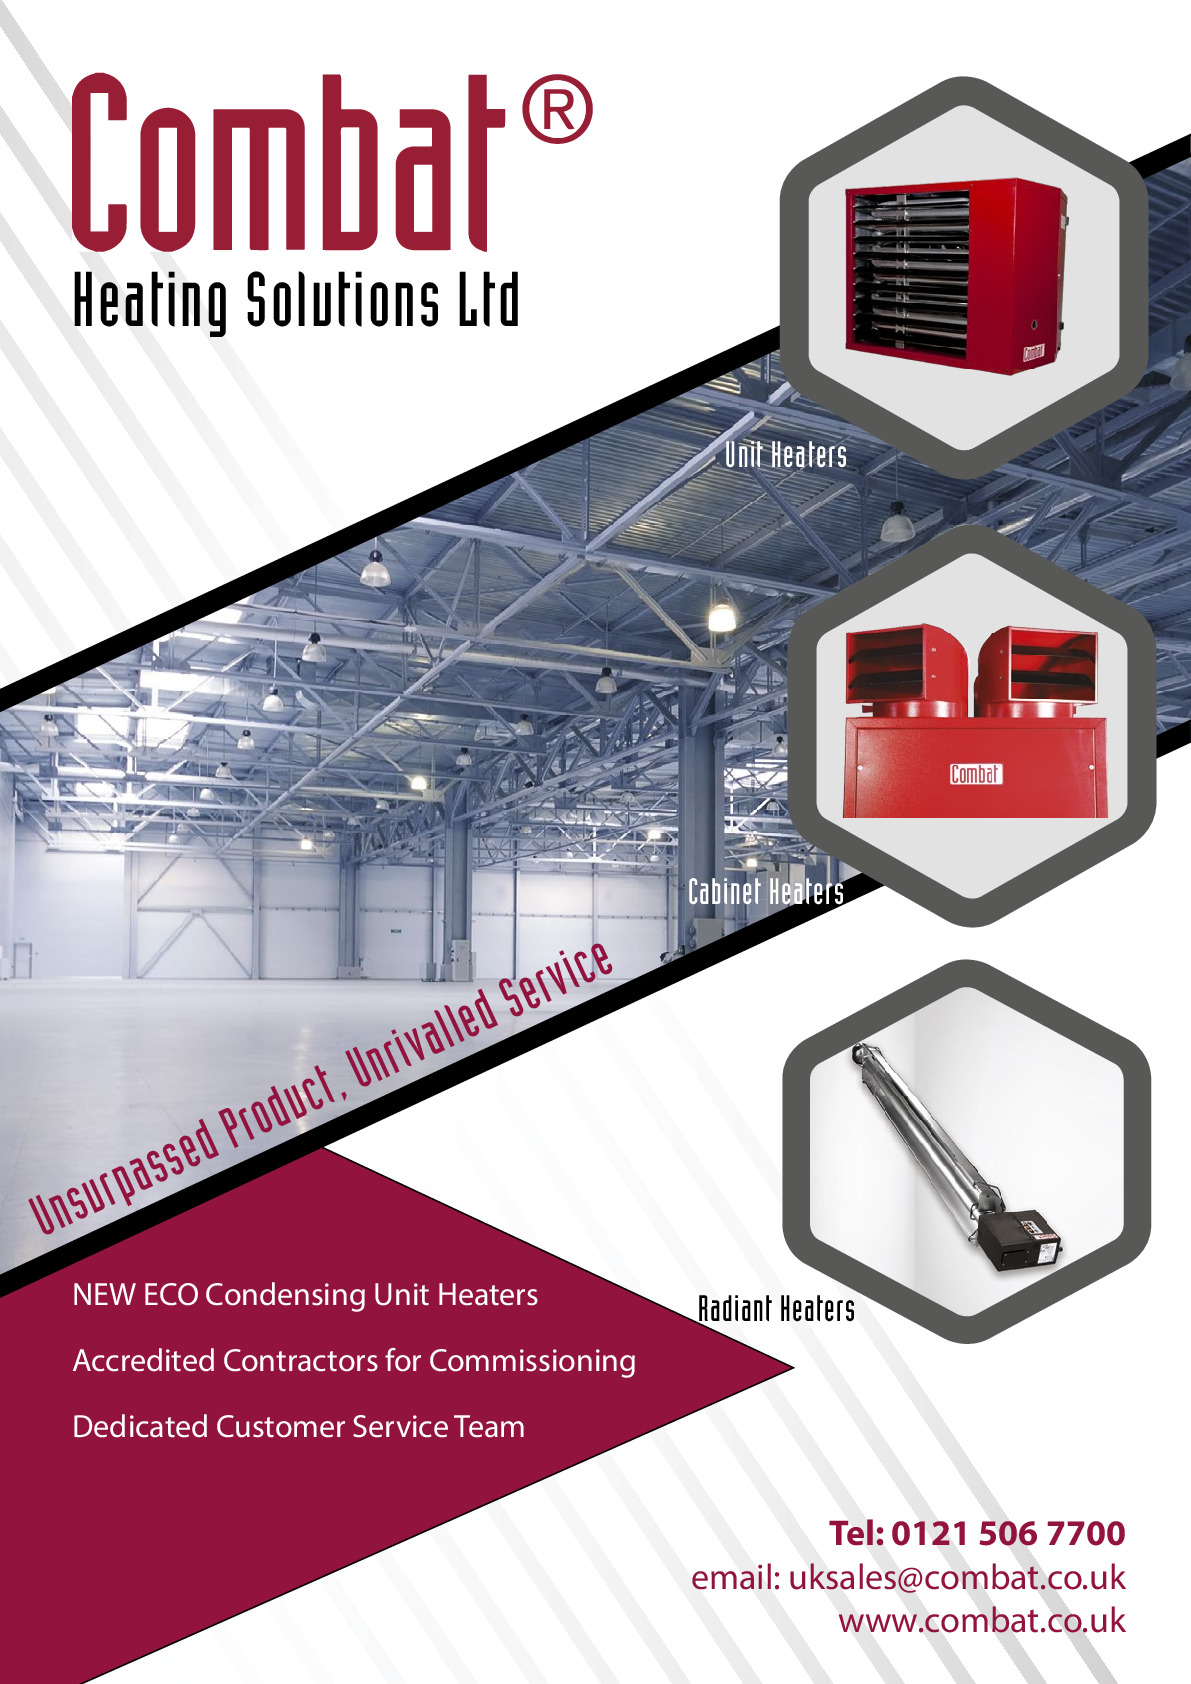 Combat Heating Solutions Ltd advertisement thumbnail